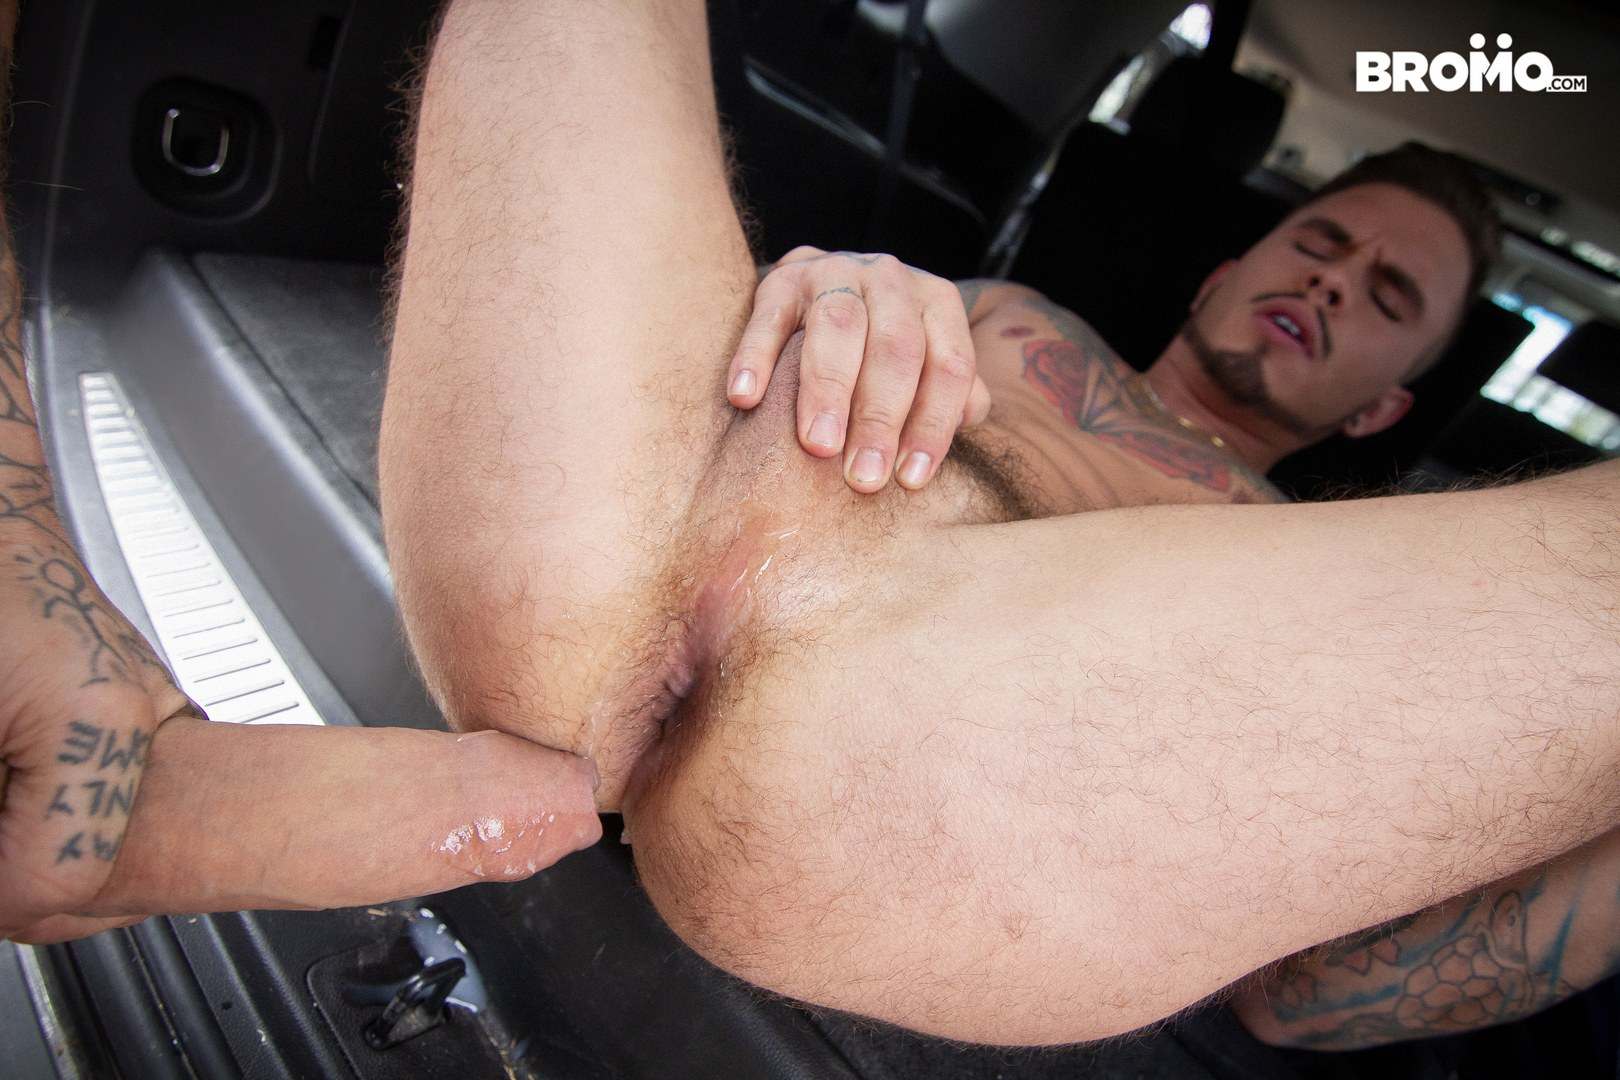 Tattooed men having hardcore gay sex